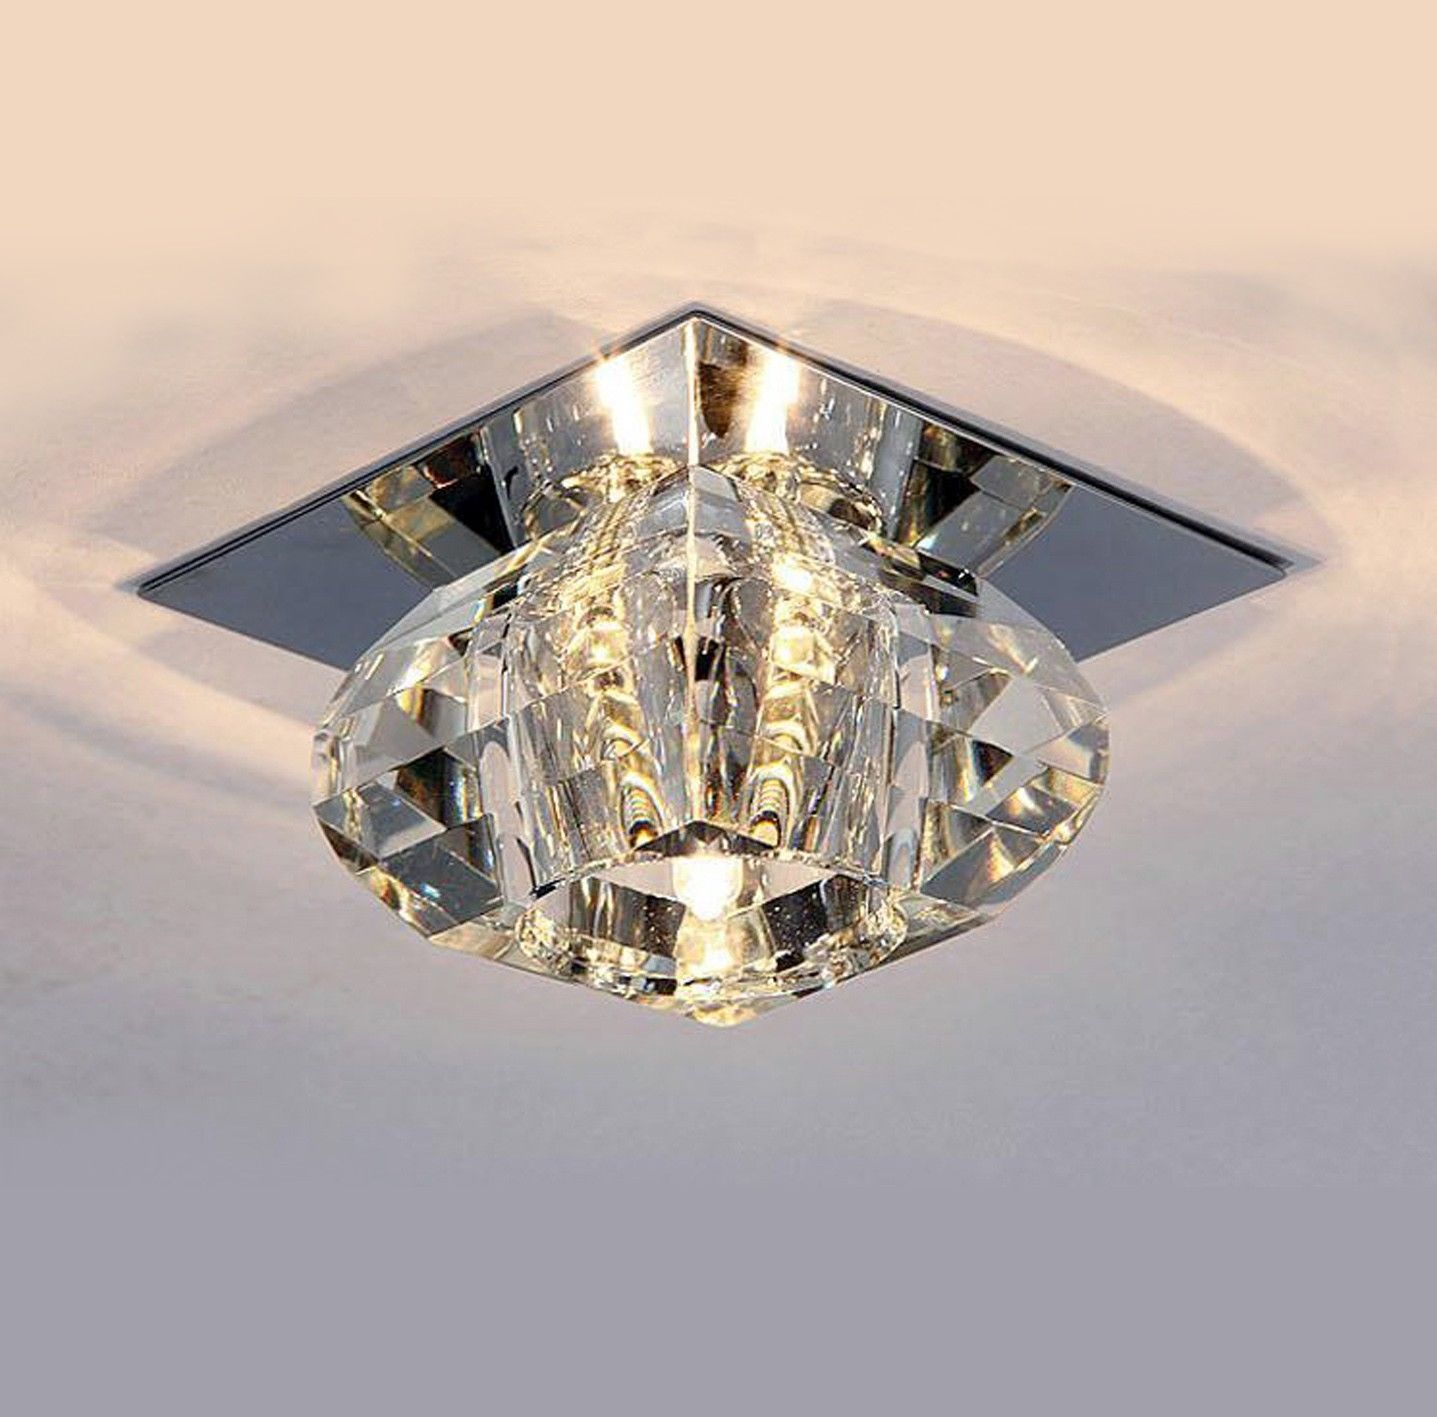 Modern Crystal LED Ceiling Light Pendant Lamp Fixture Lighting